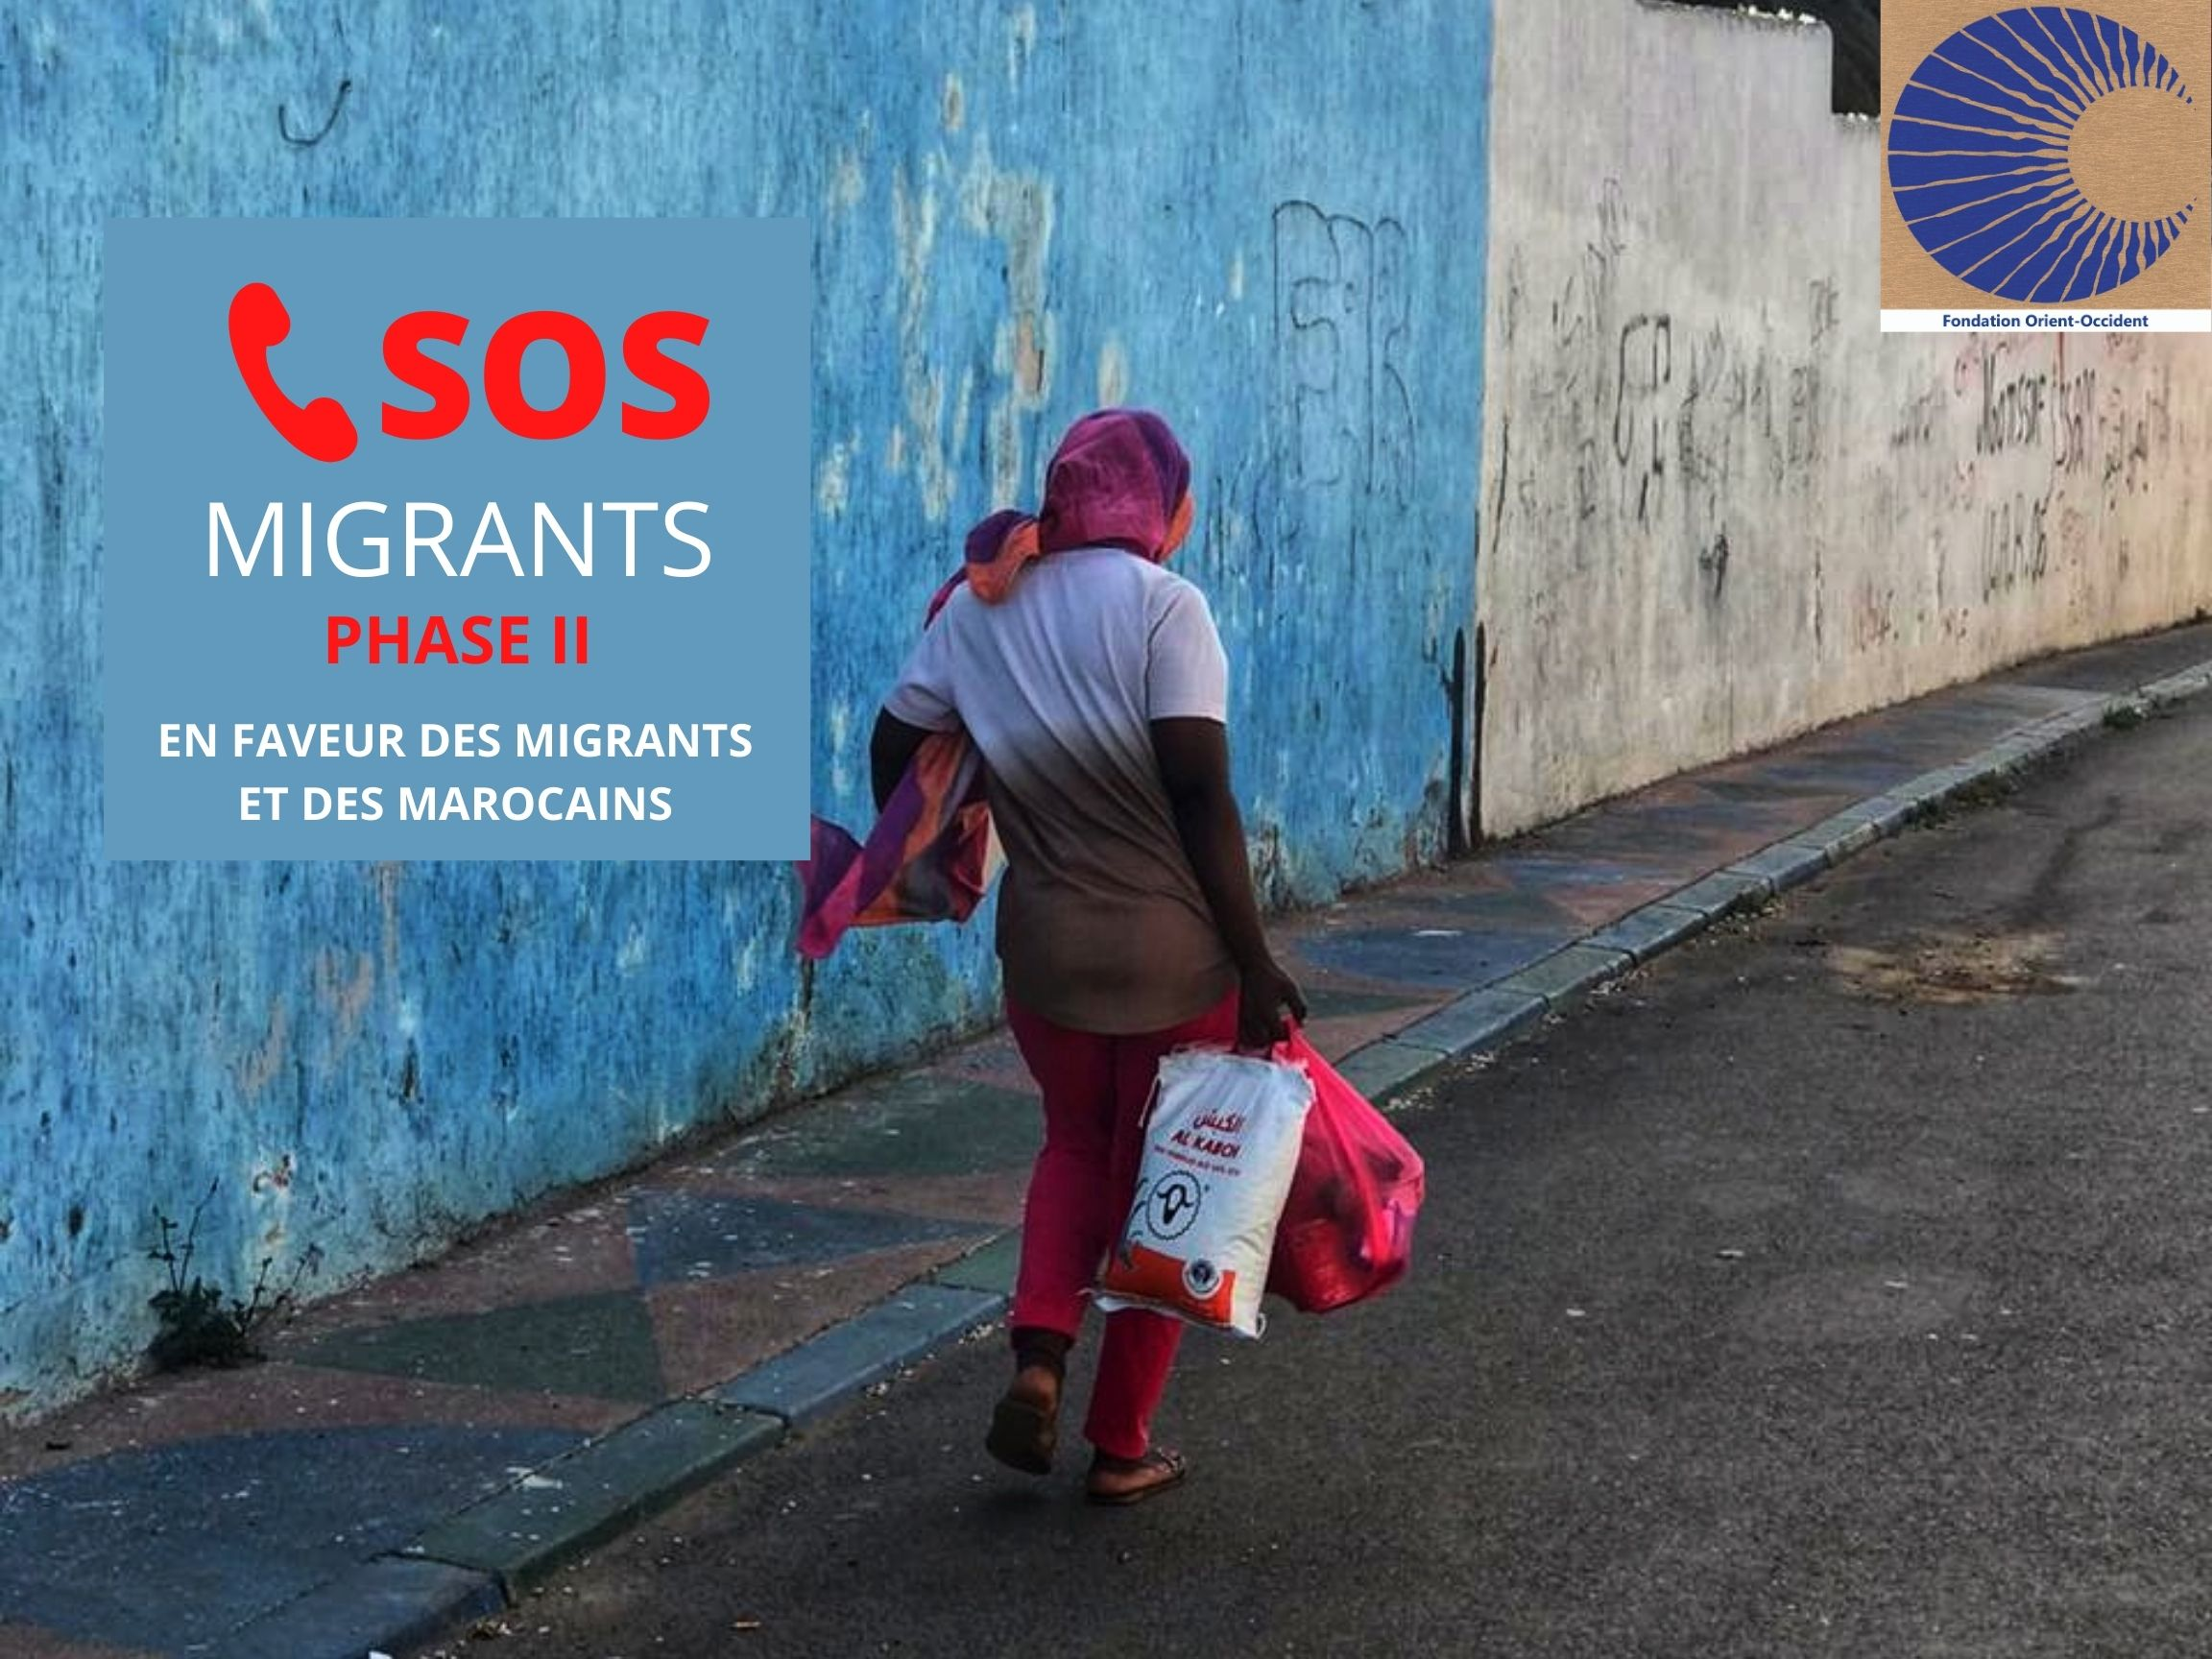 SOS Migrants Phase II